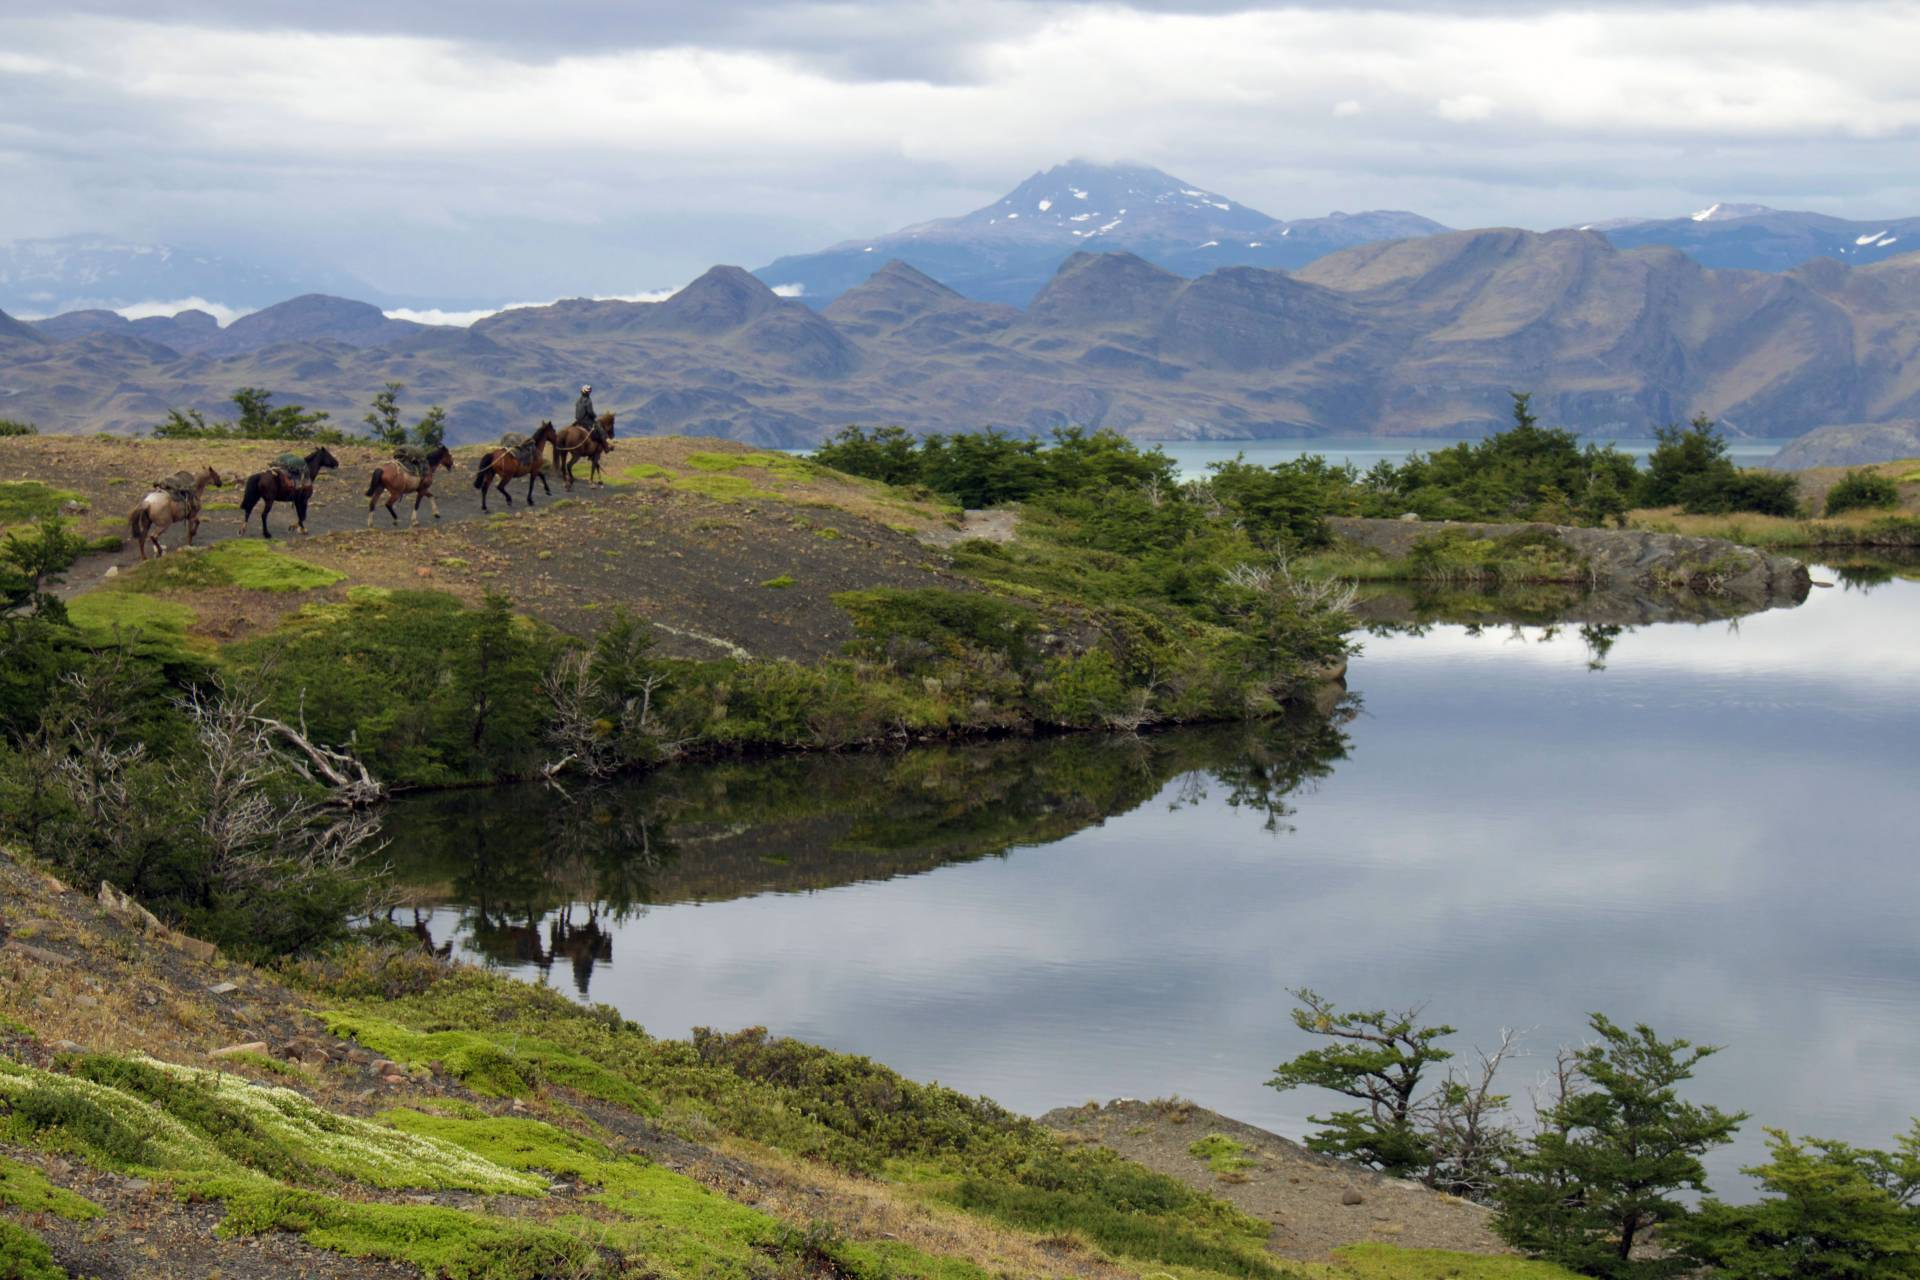 Gauchos on the trail in Torres Del Paine National Park